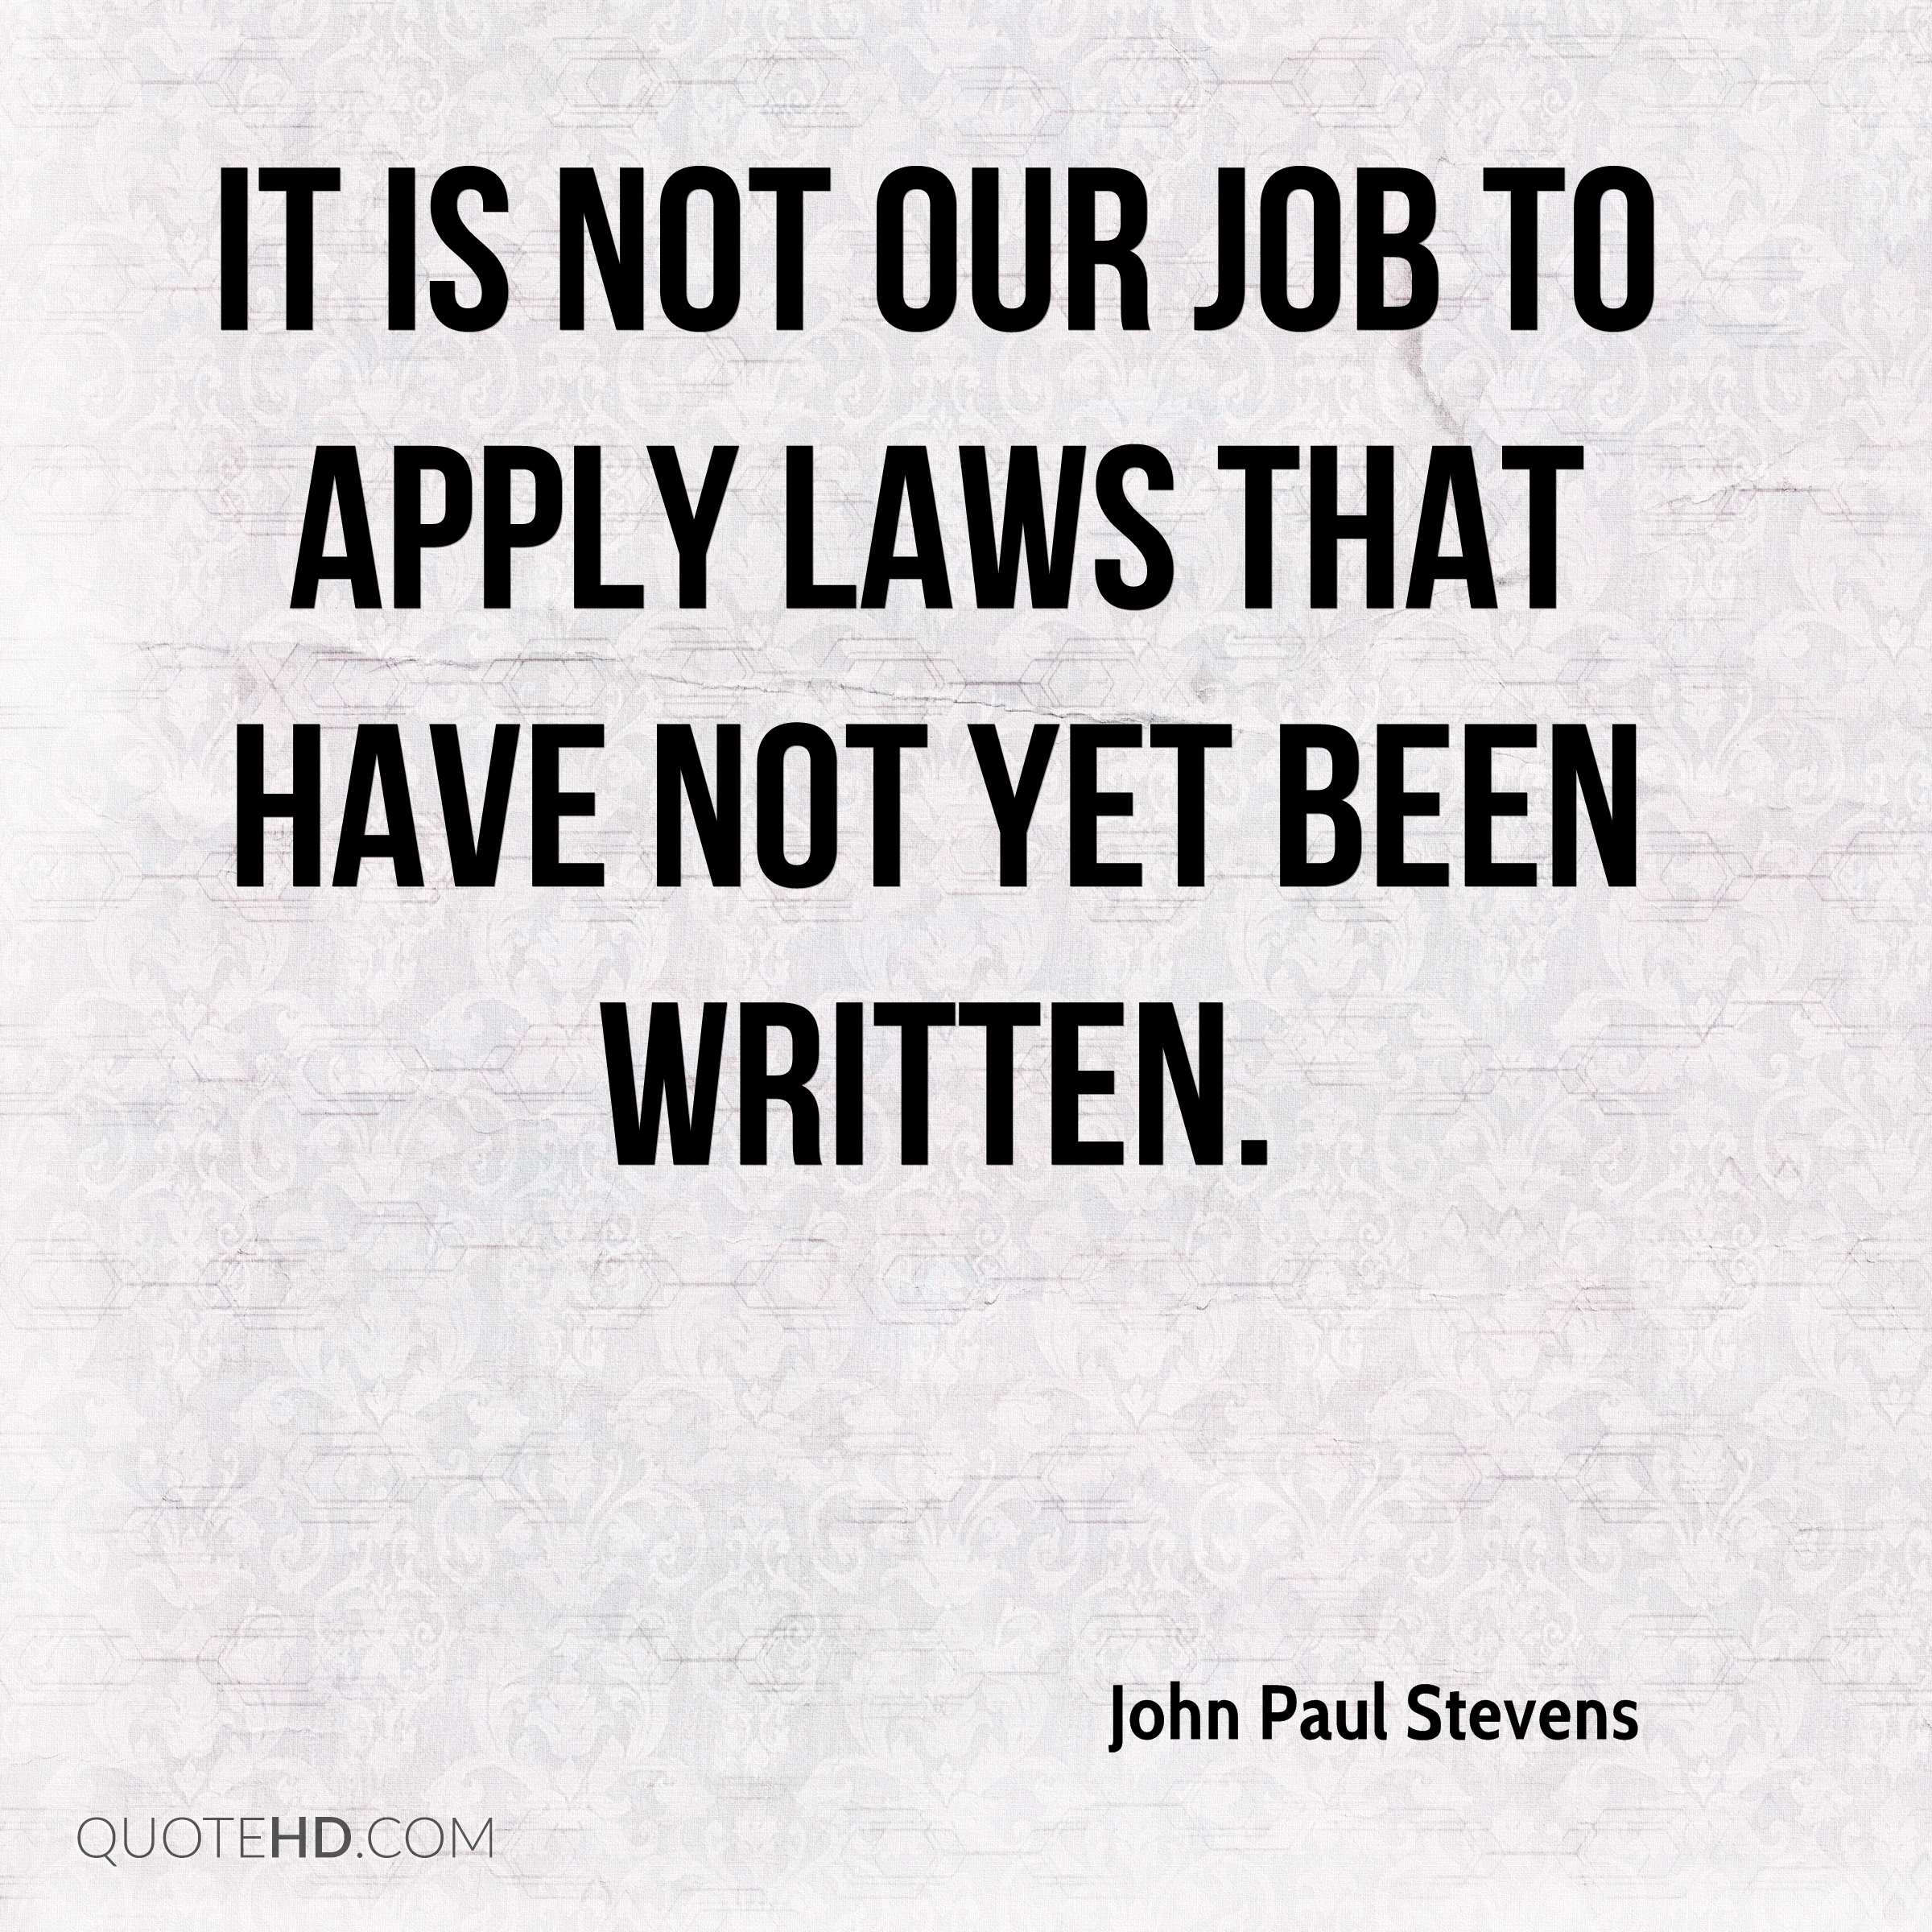 It is not our job to apply laws that have not yet been written.